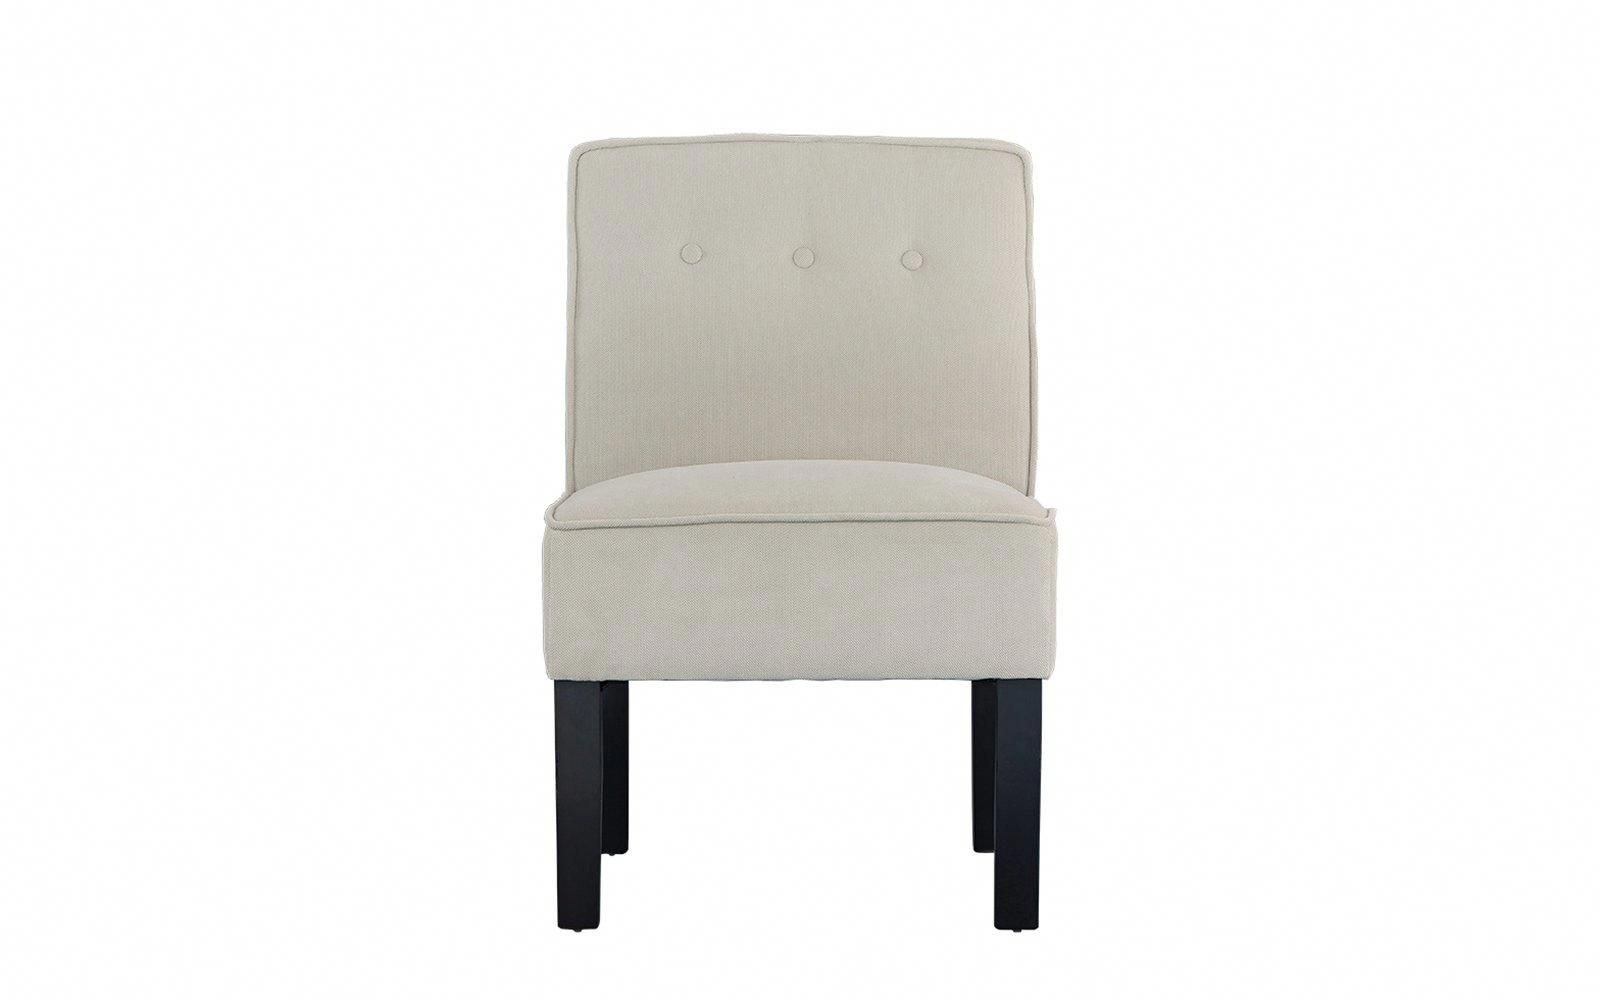 Ames Classic Armless Linen Accent Chair #ameschair | Oversized Chair With Regard To Ames Arm Sofa Chairs (Image 4 of 20)